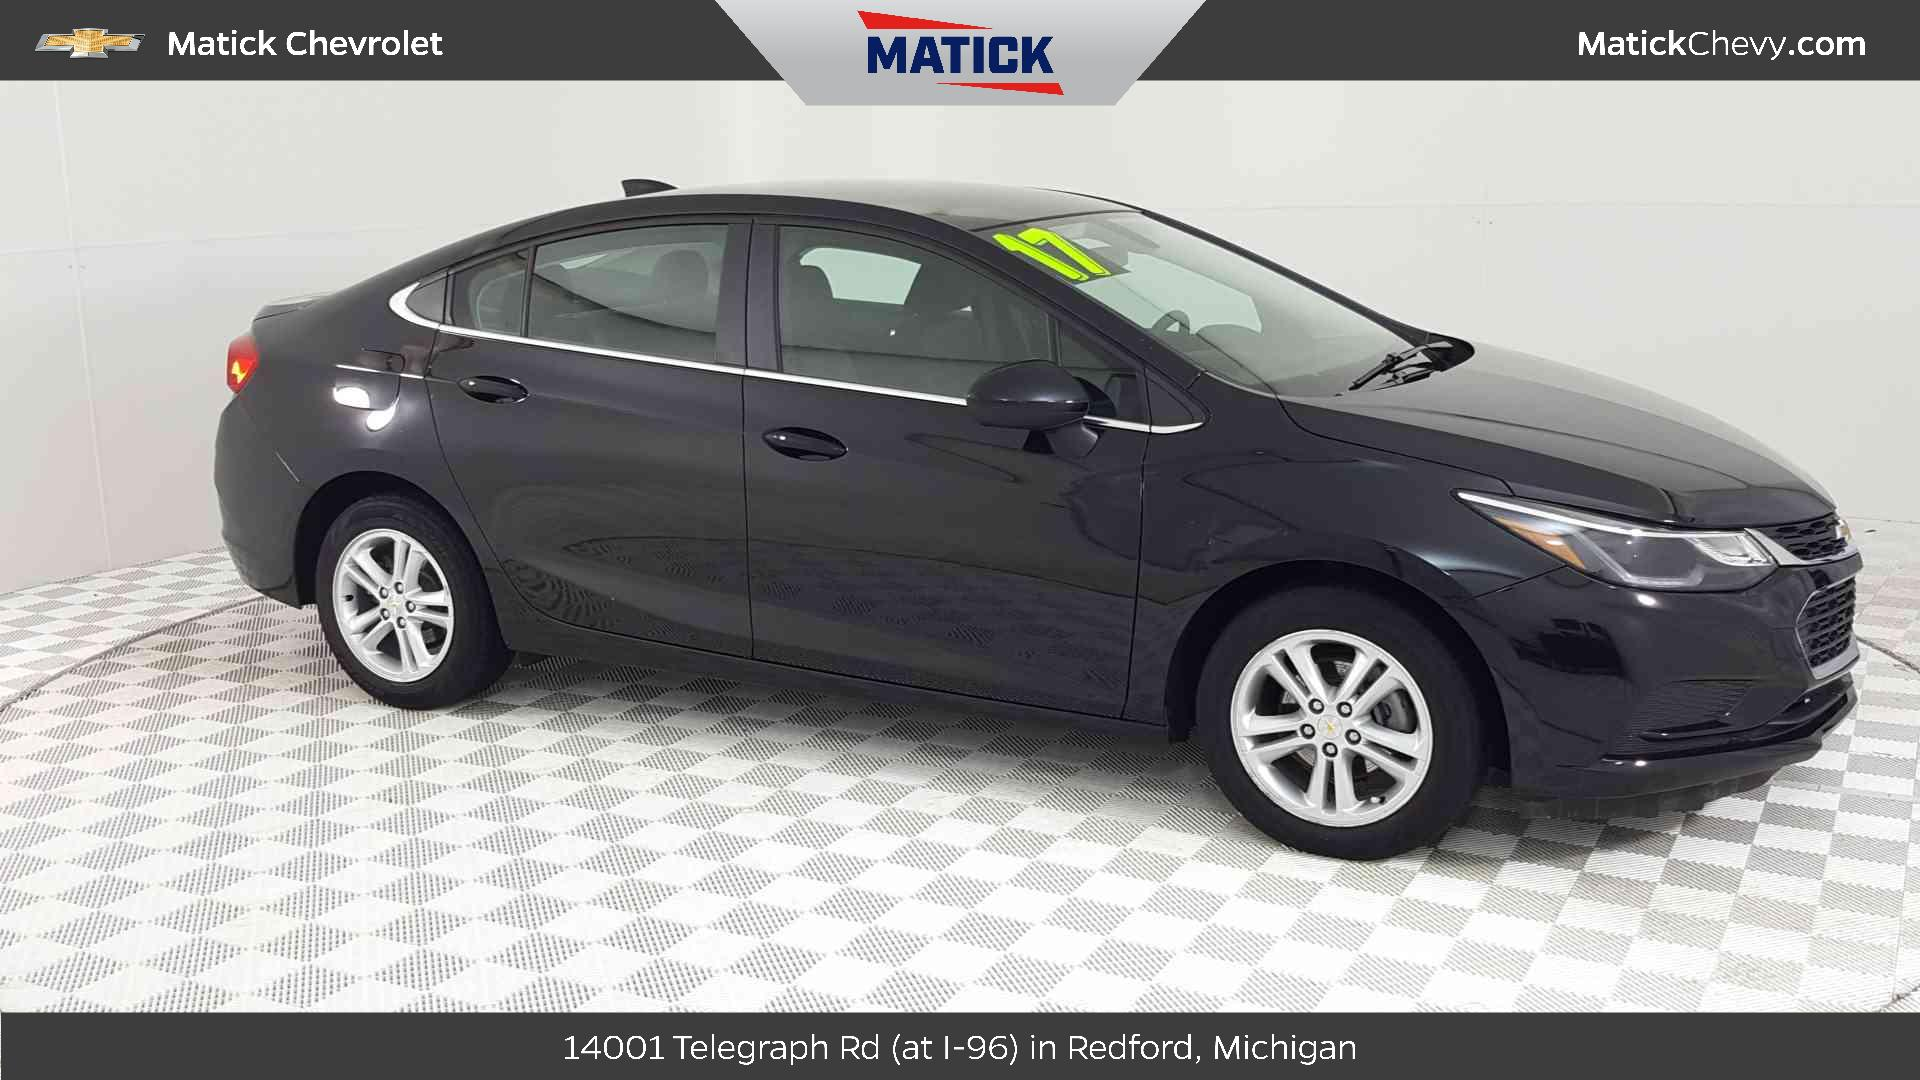 Pre-Owned 2017 Chevrolet Cruze Sedan LT (Automatic)